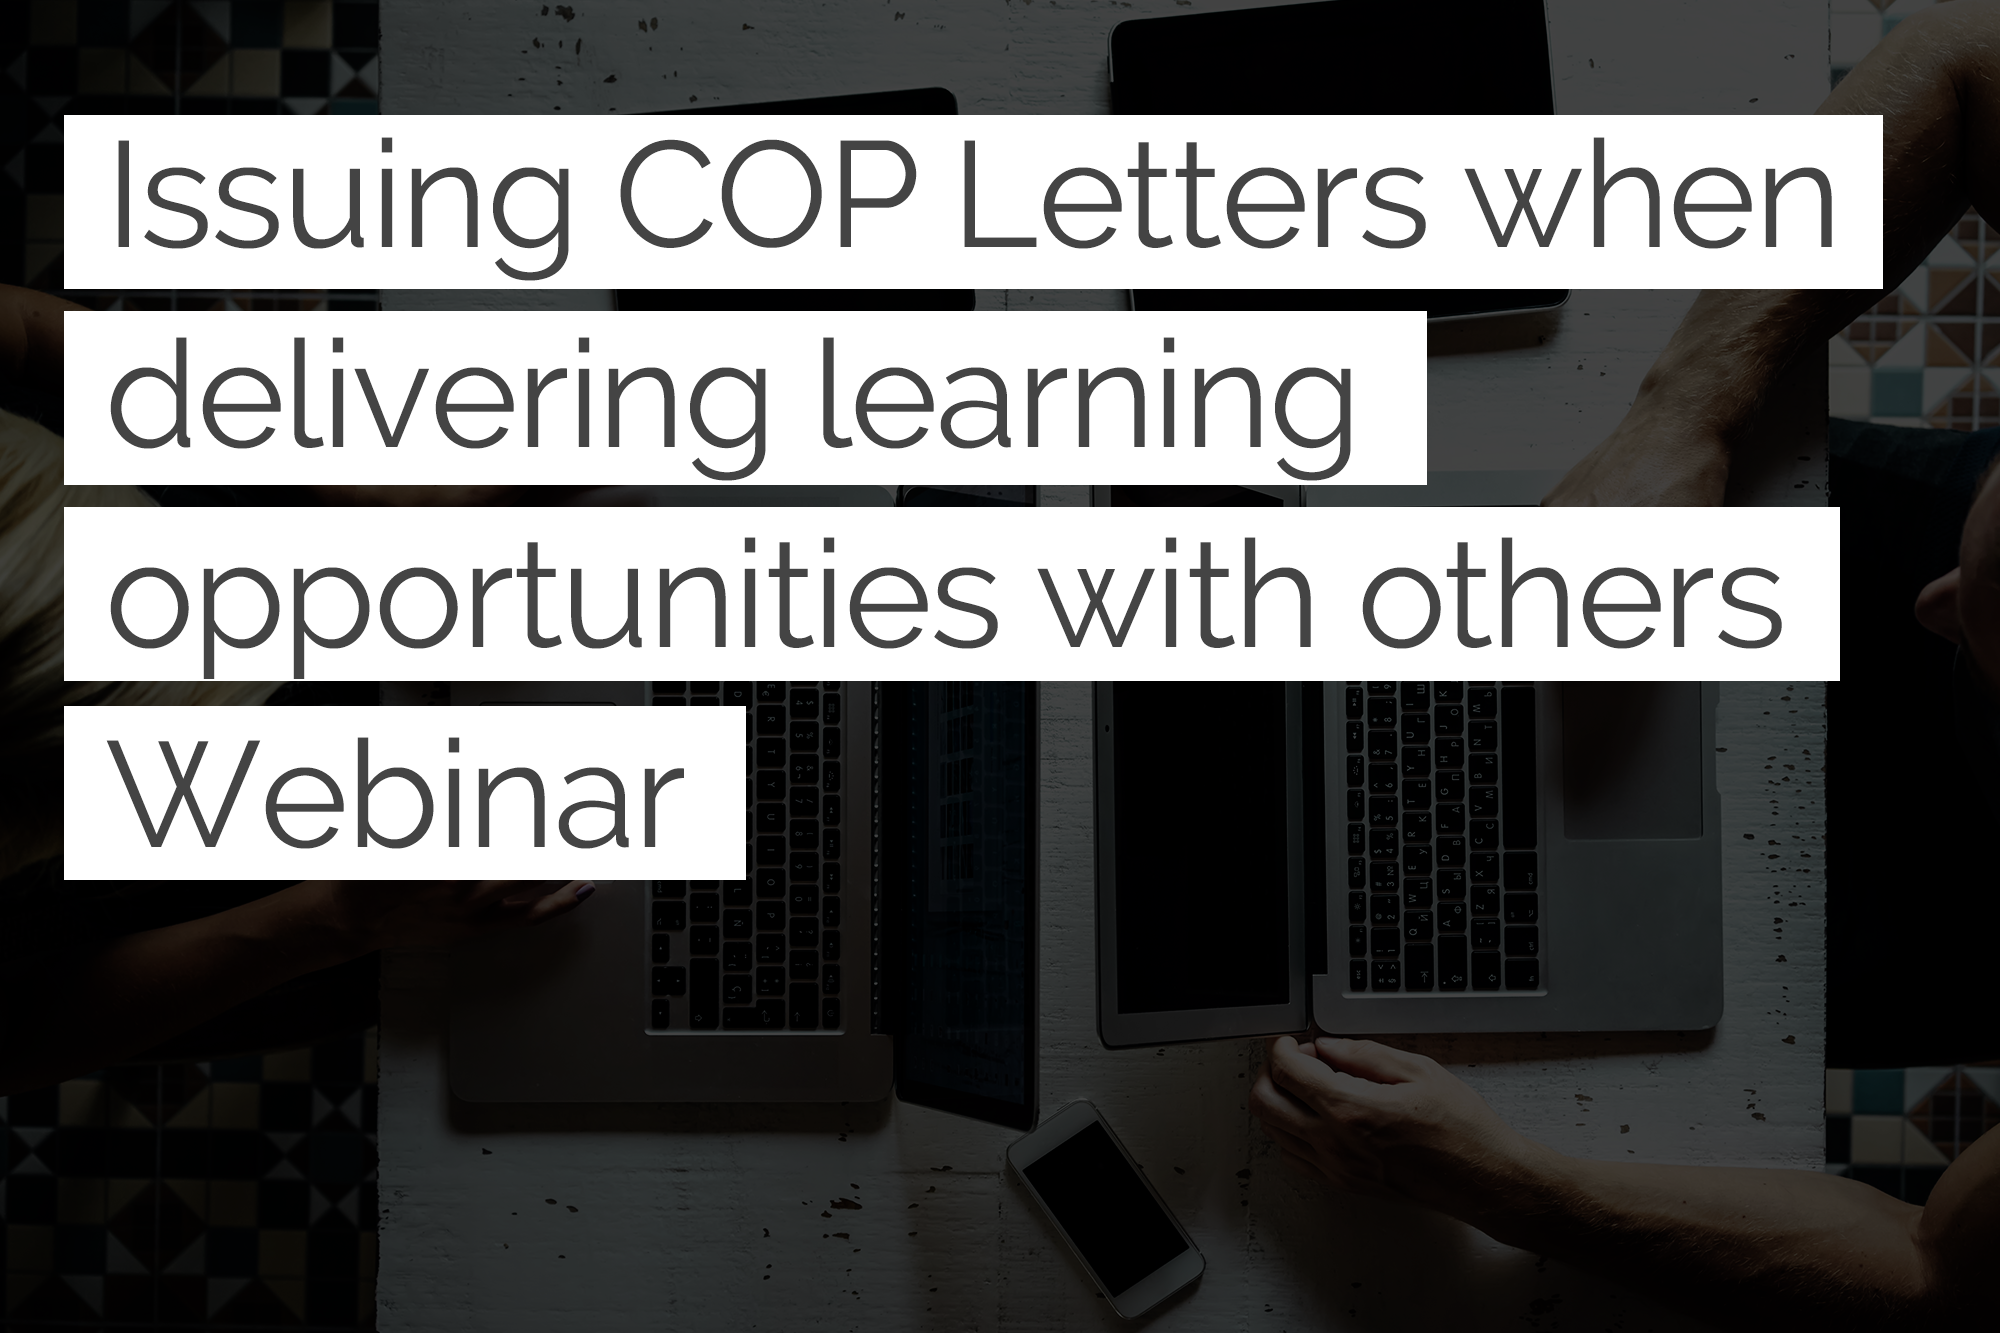 Issuing Completion of Procedures Letters when delivering learning opportunities with others webinars